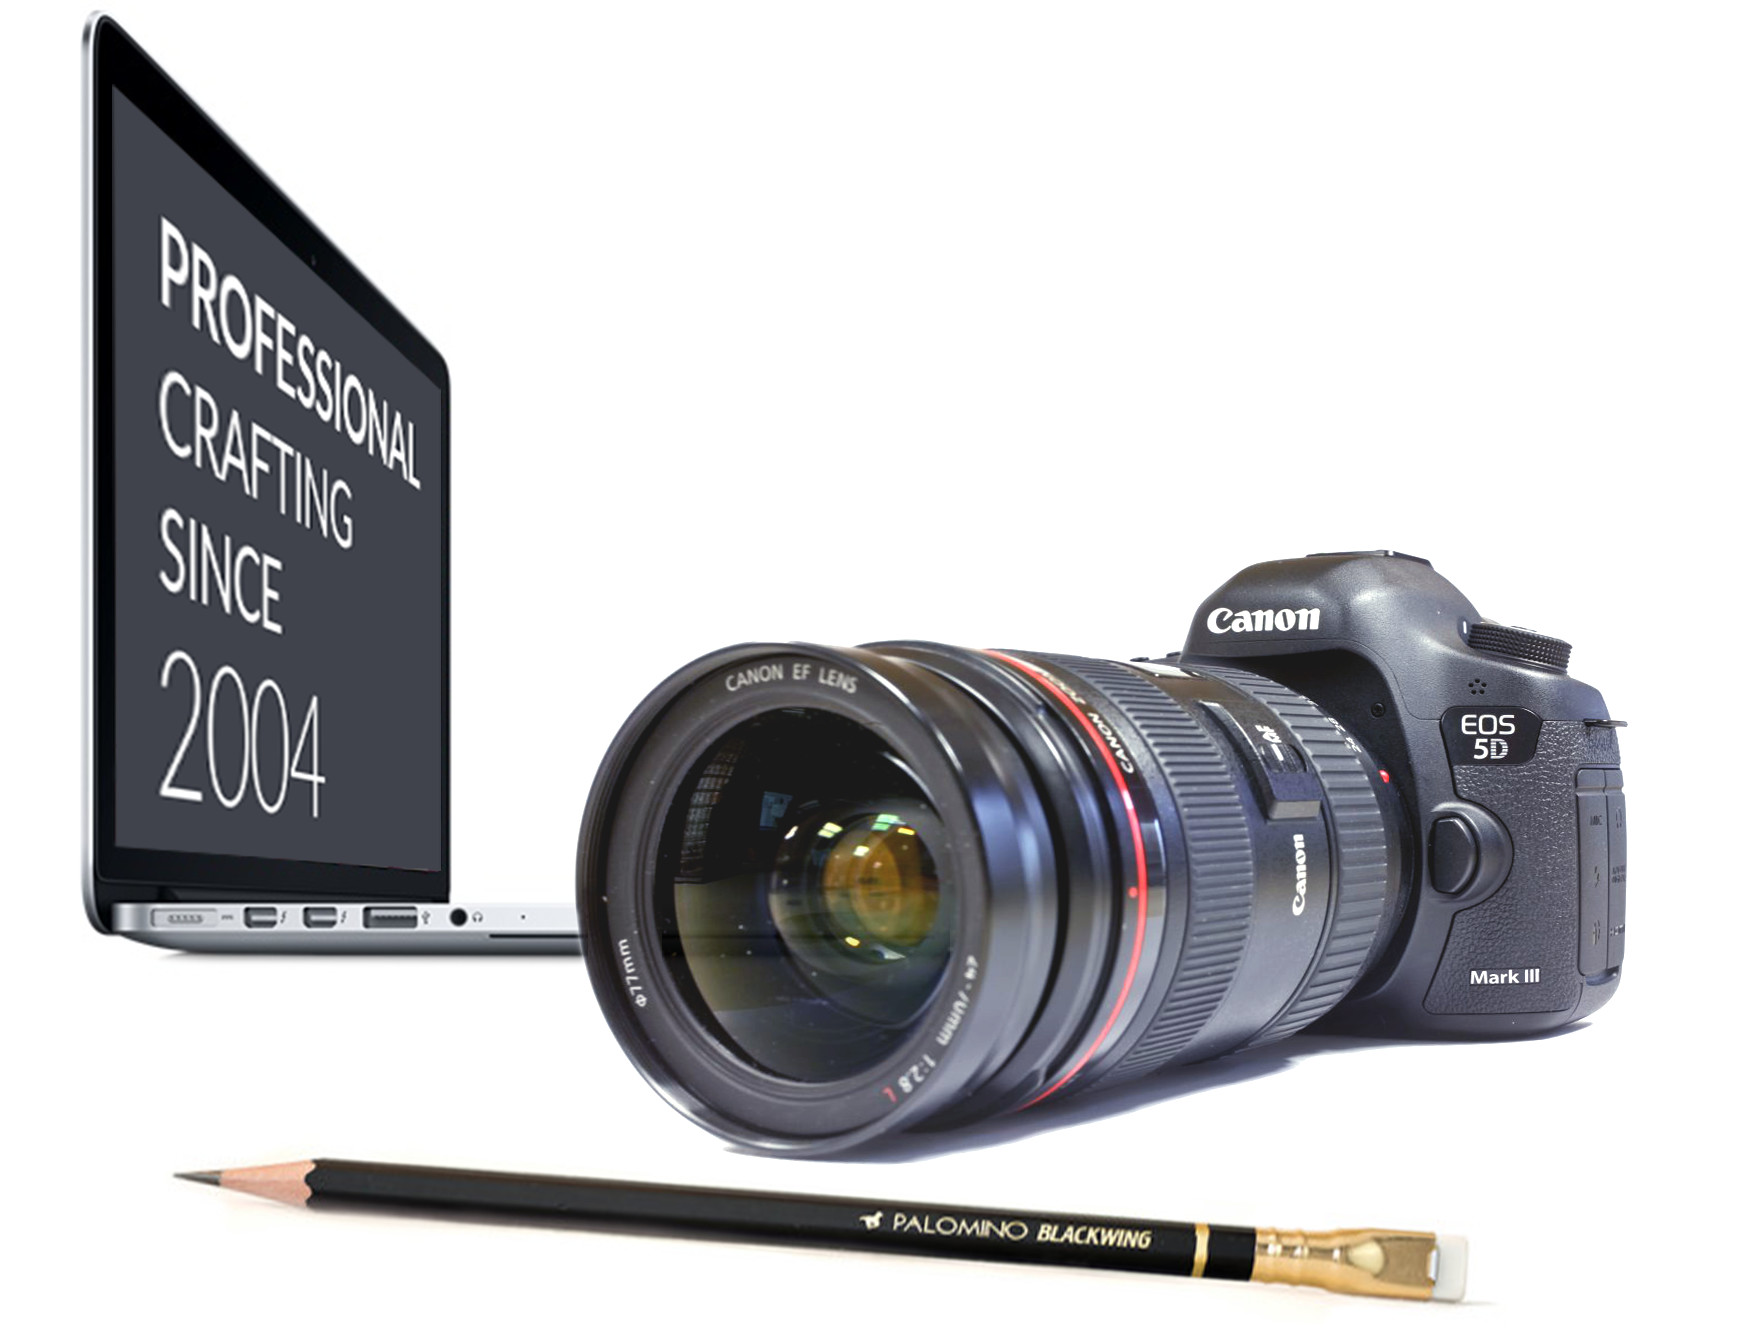 Macbook Pro, Canon 5d, Blackwing Pencil